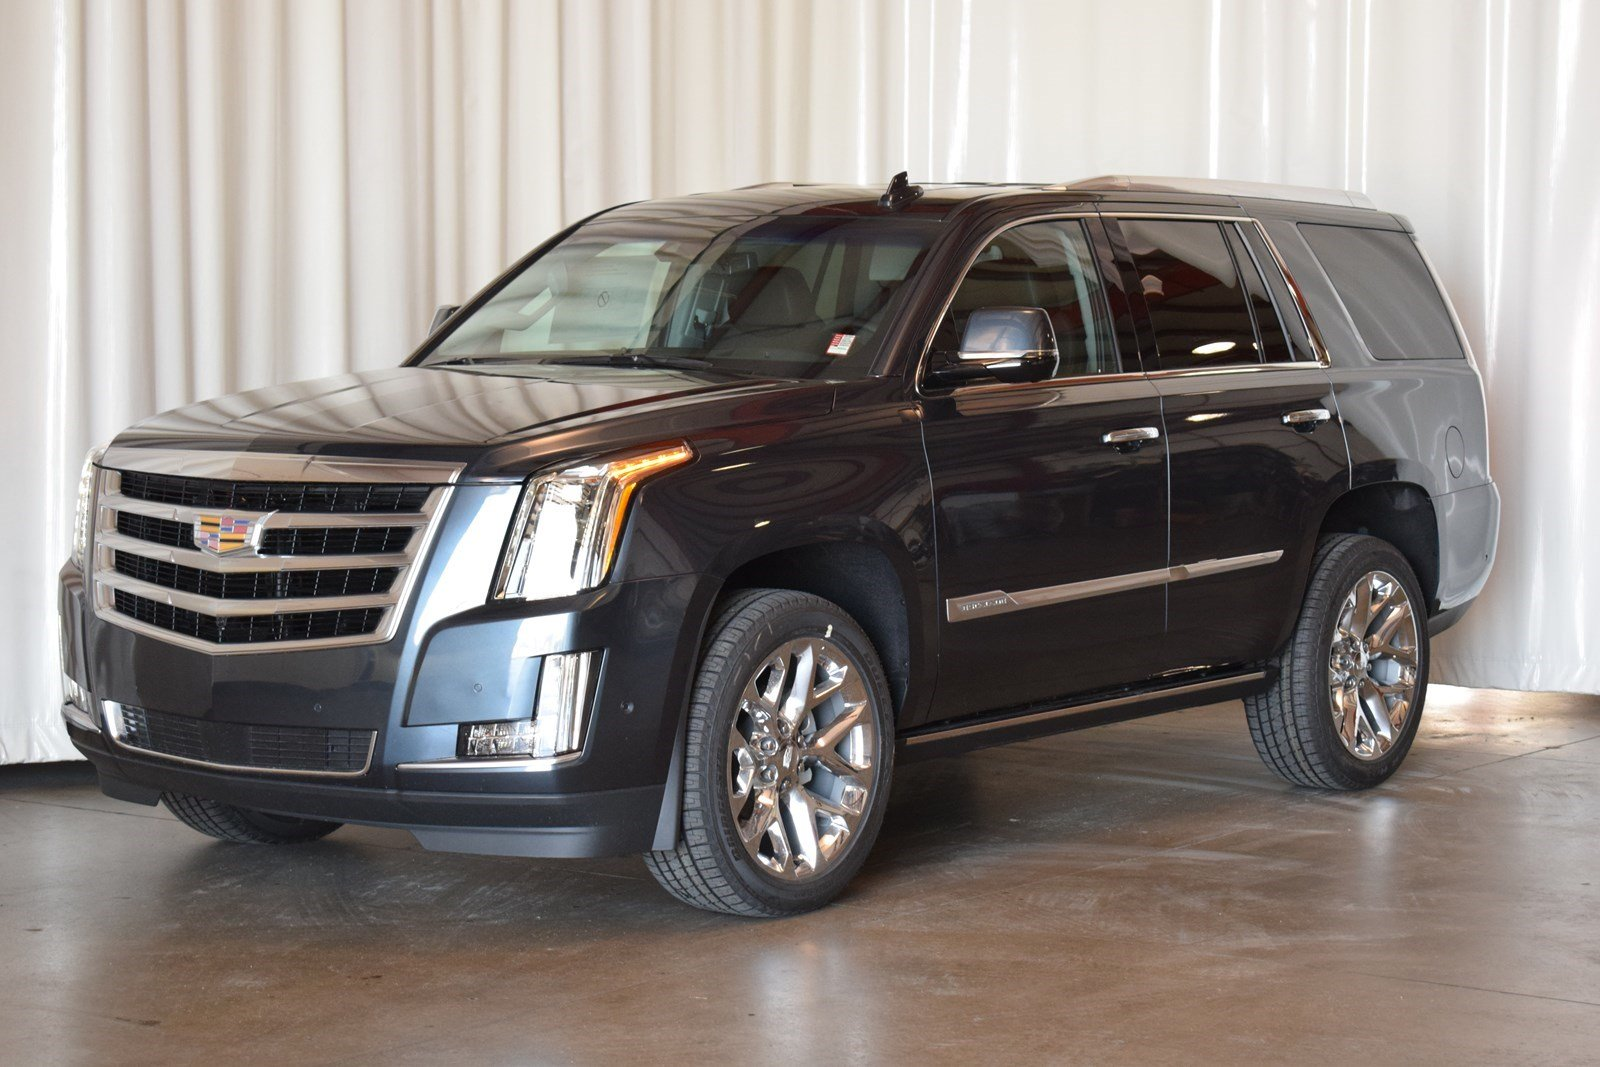 39 New 2019 Cadillac Escalade Luxury Suv Specs and Review